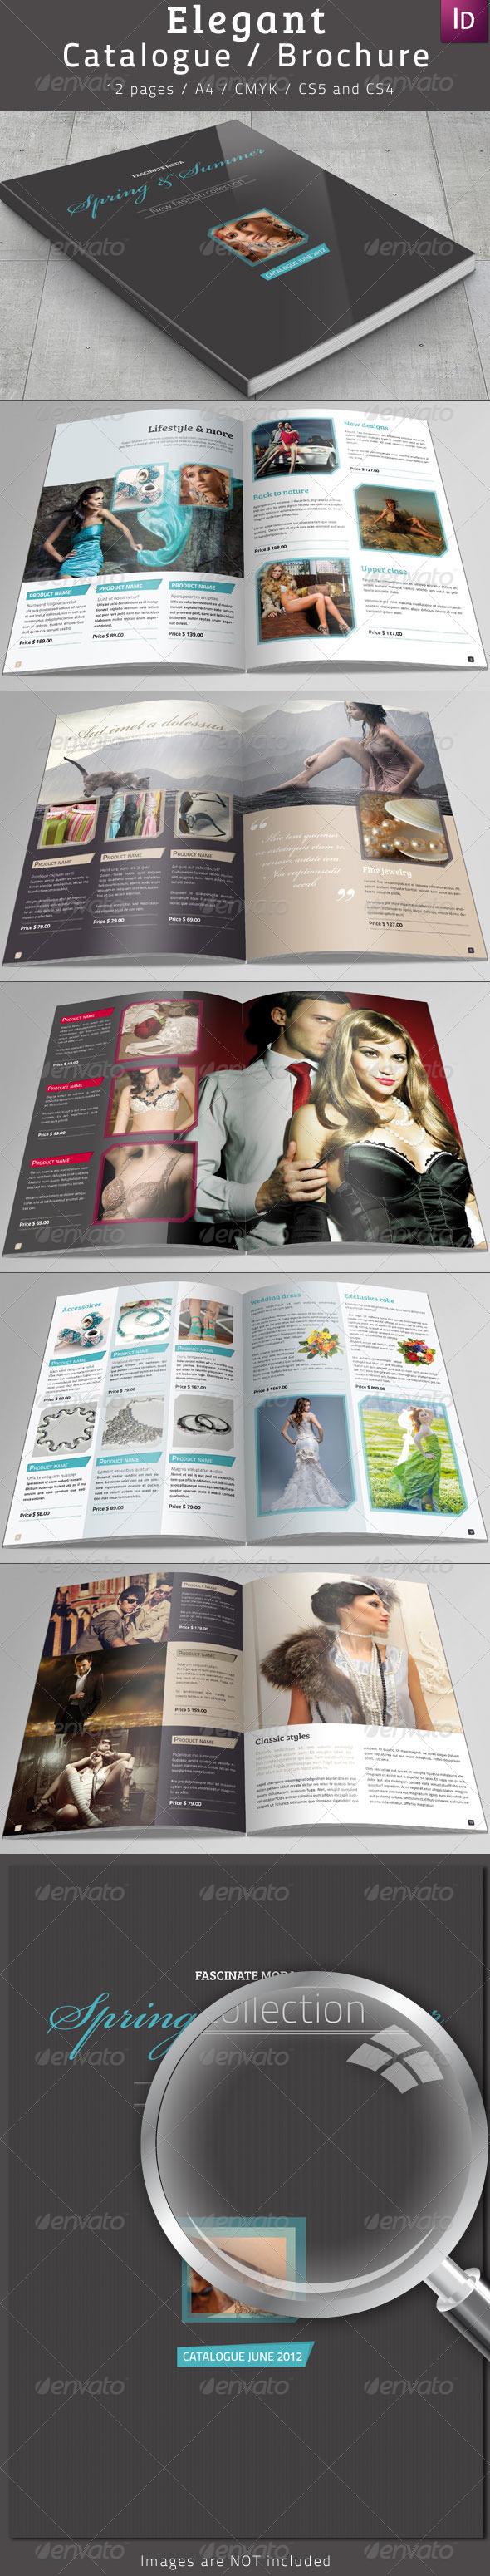 Elegant Catalogue / Brochure - Catalogs Brochures